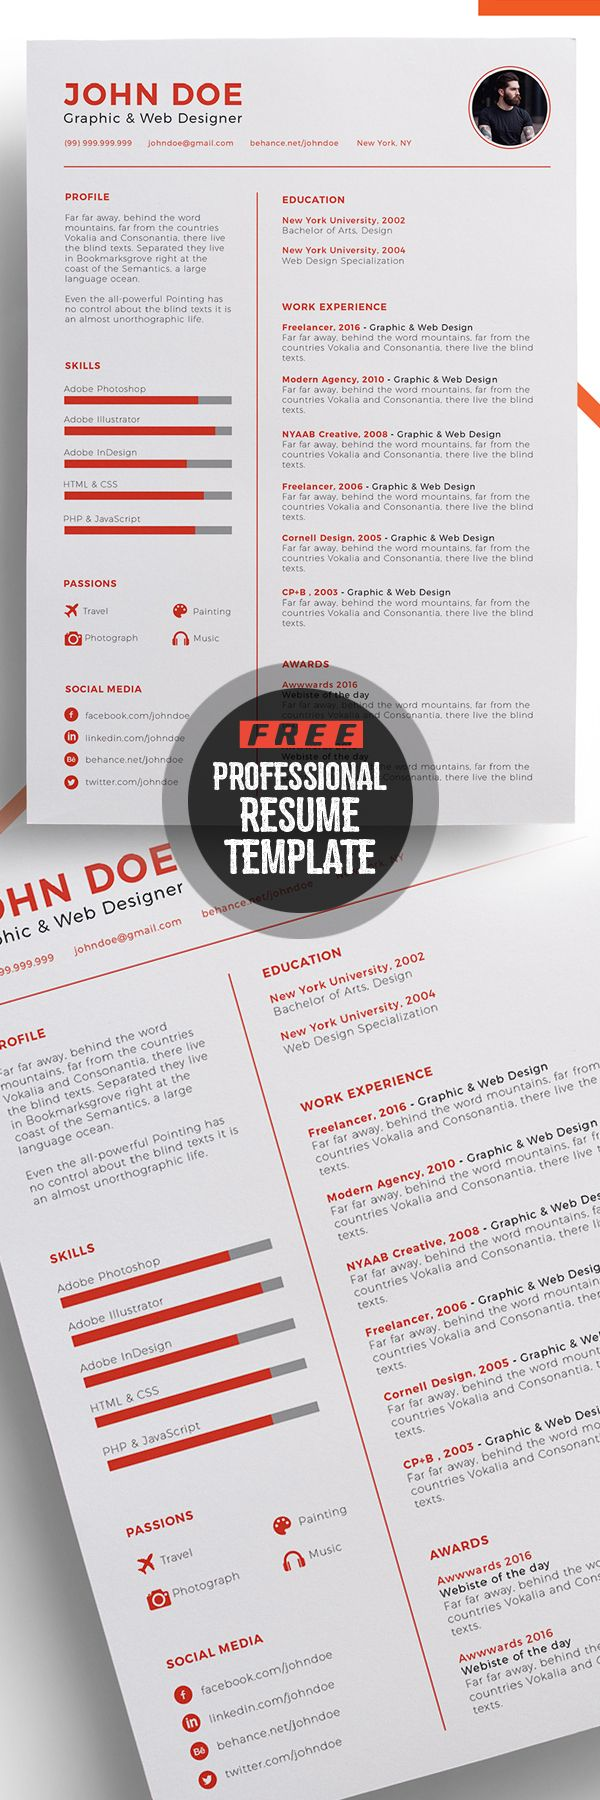 Professional Free Resume Template Design | ~ Graphic ressources ...